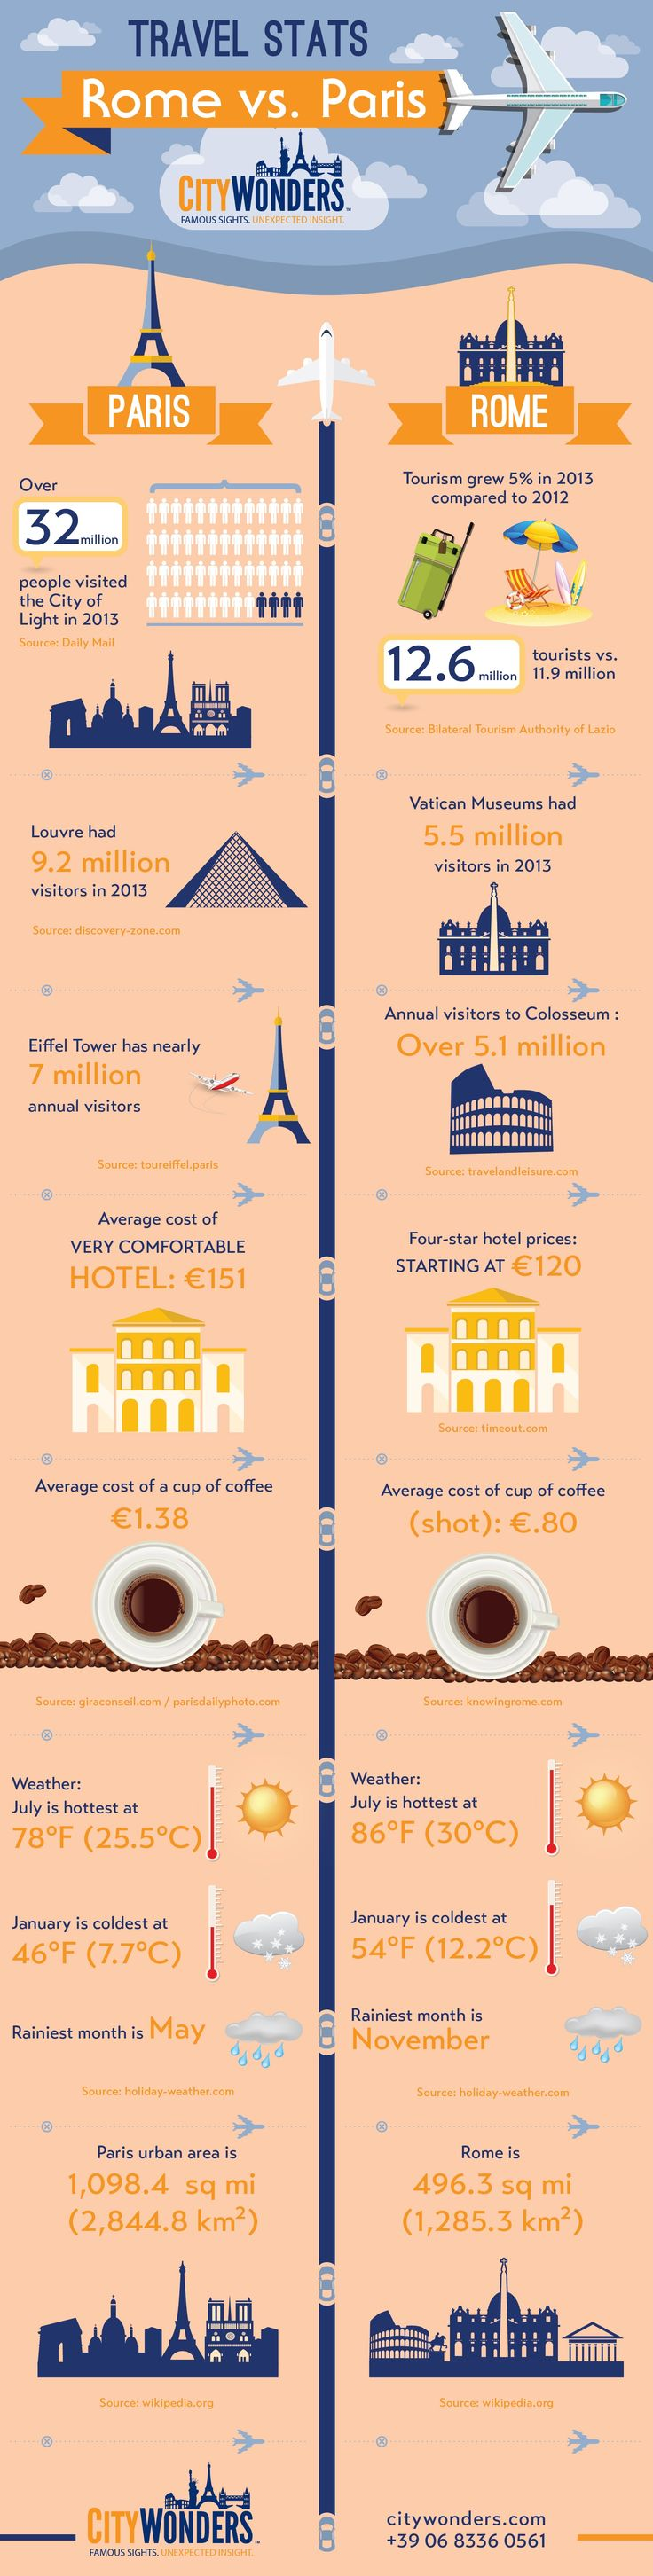 Infographic: Rome vs. Paris Travel Stats  http://www.citywonders.com/blog/rome-vs-paris-travel-stats-infographic/